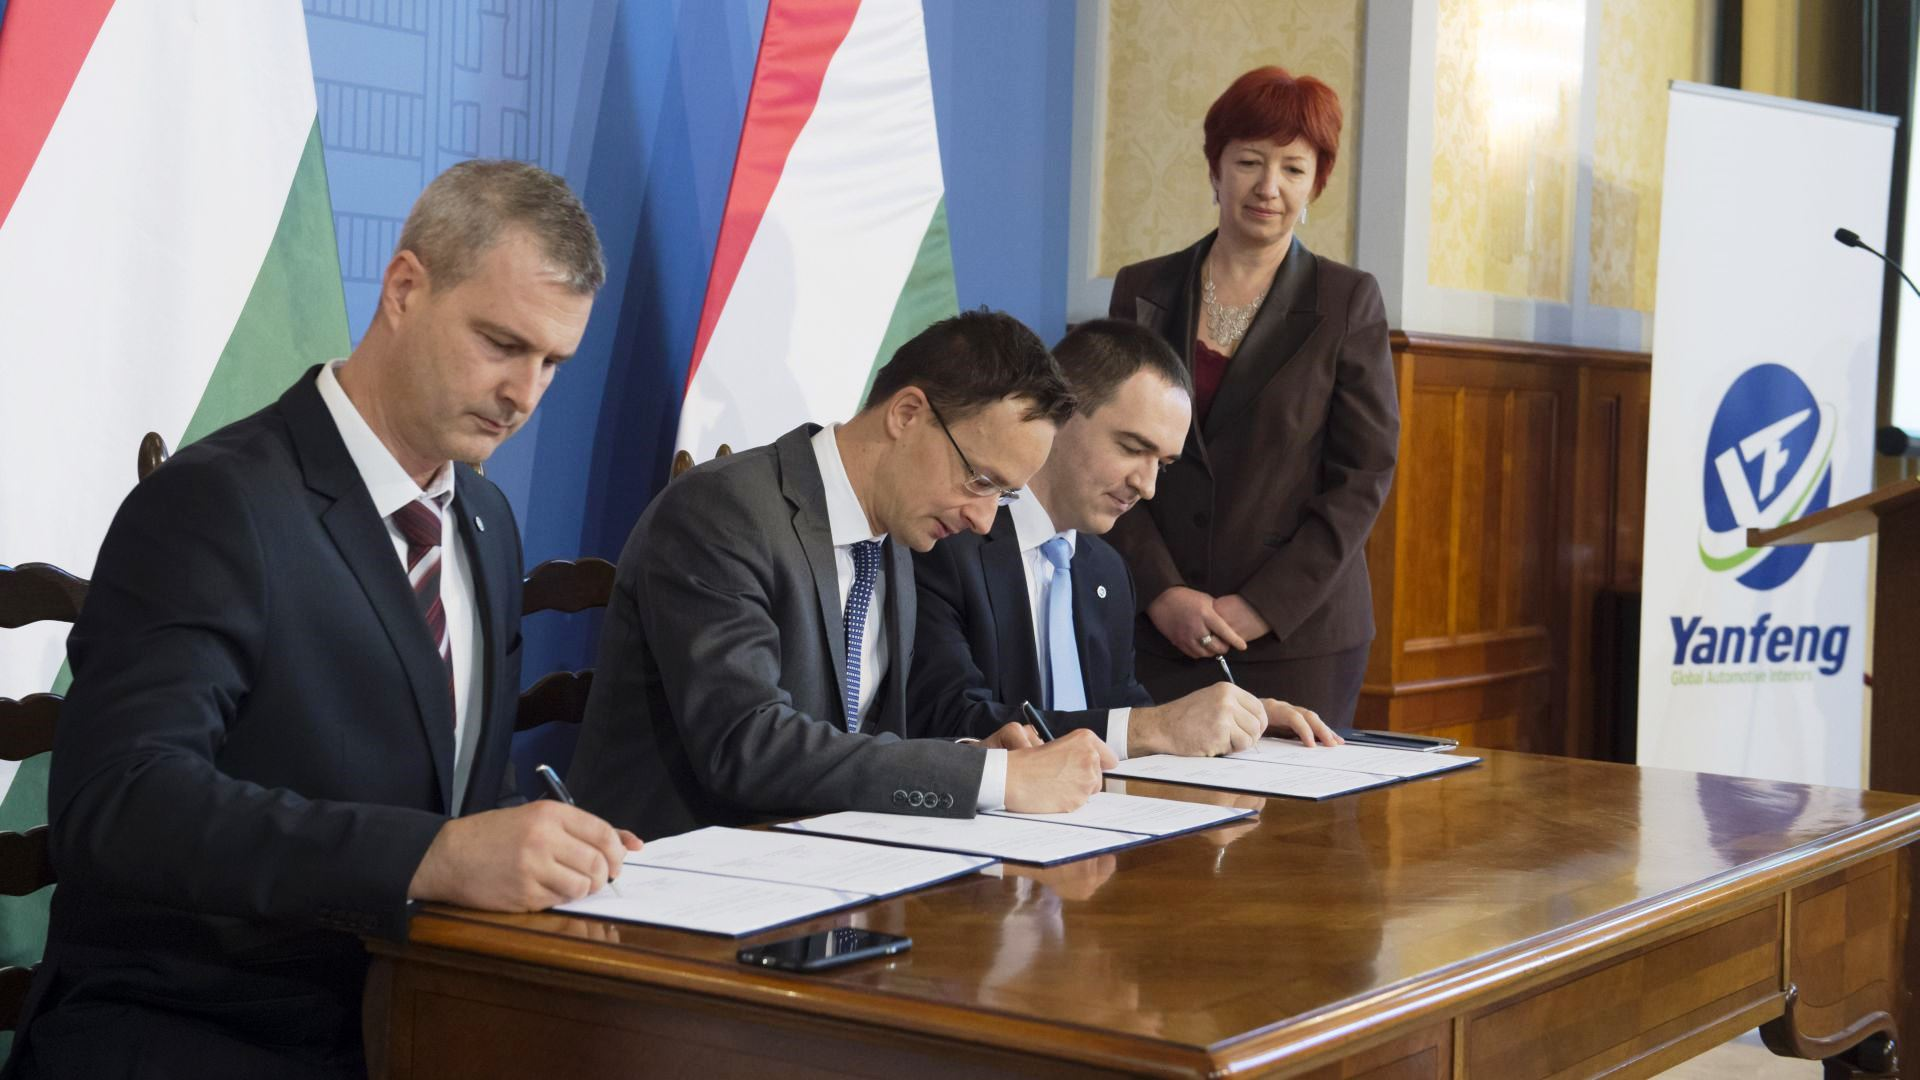 Hungarian Government and Yanfeng entered into a strategic partnership